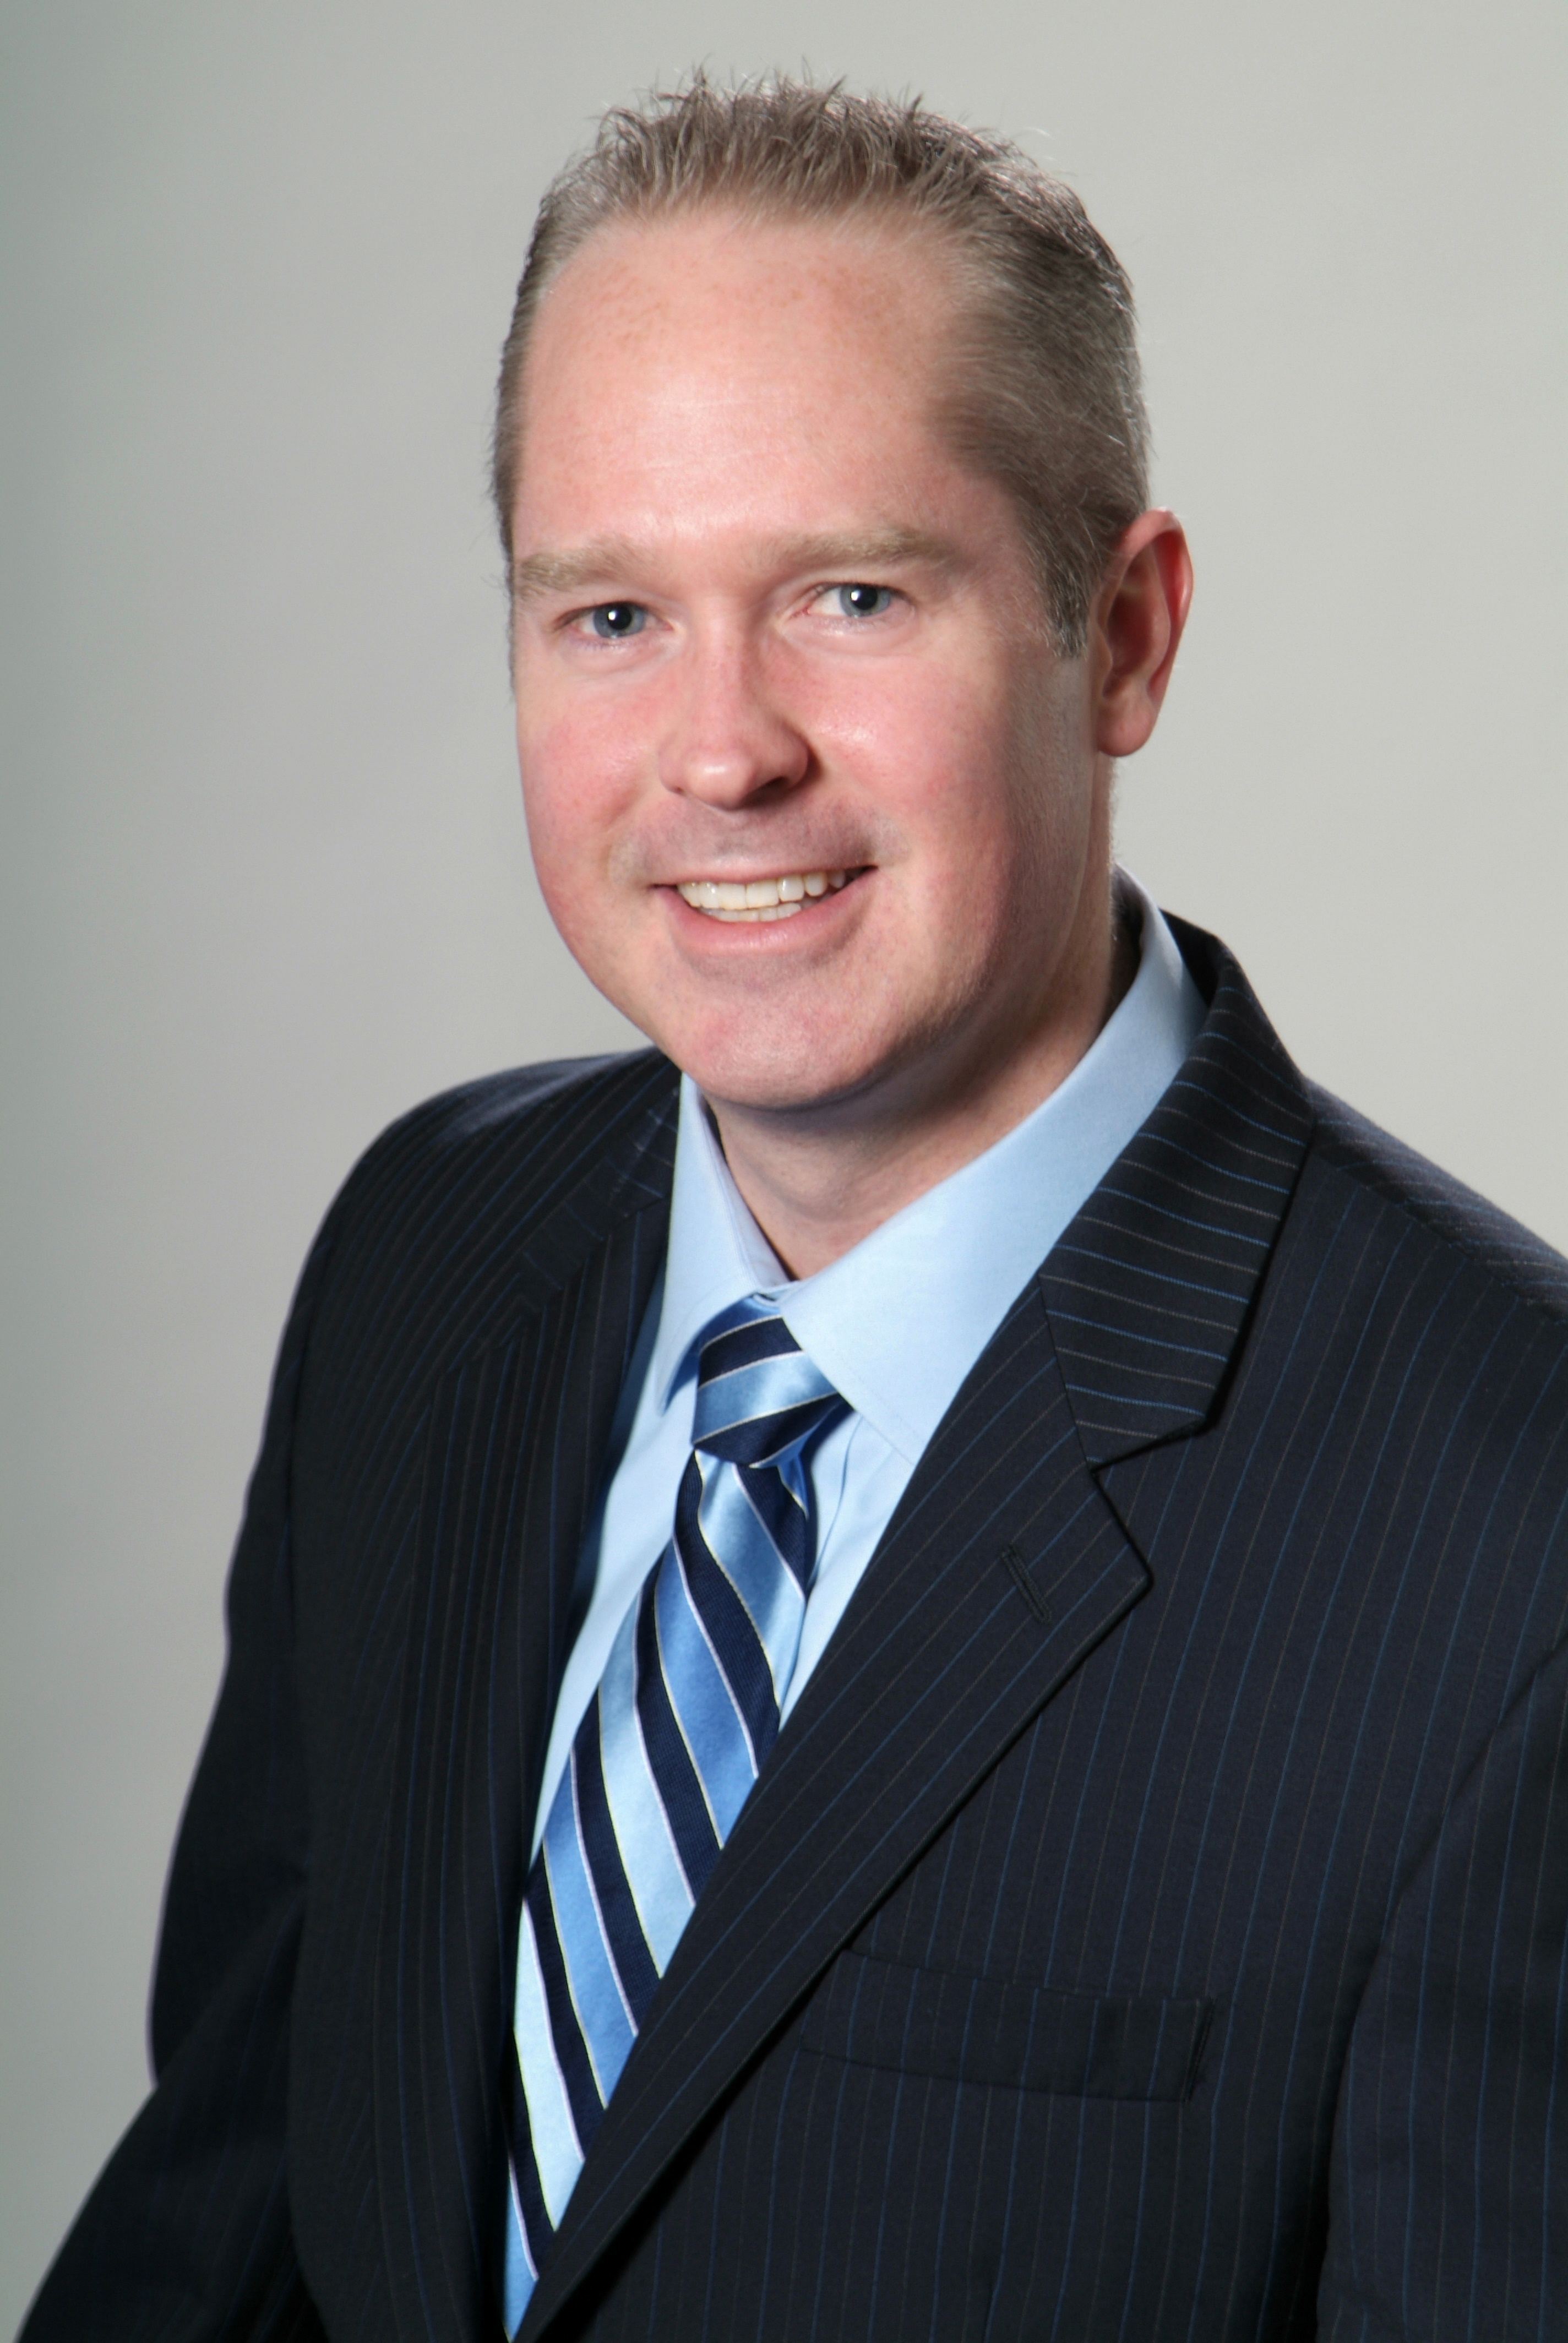 Sean McLaughlin, Prudential Retirement (Photo: Business Wire)